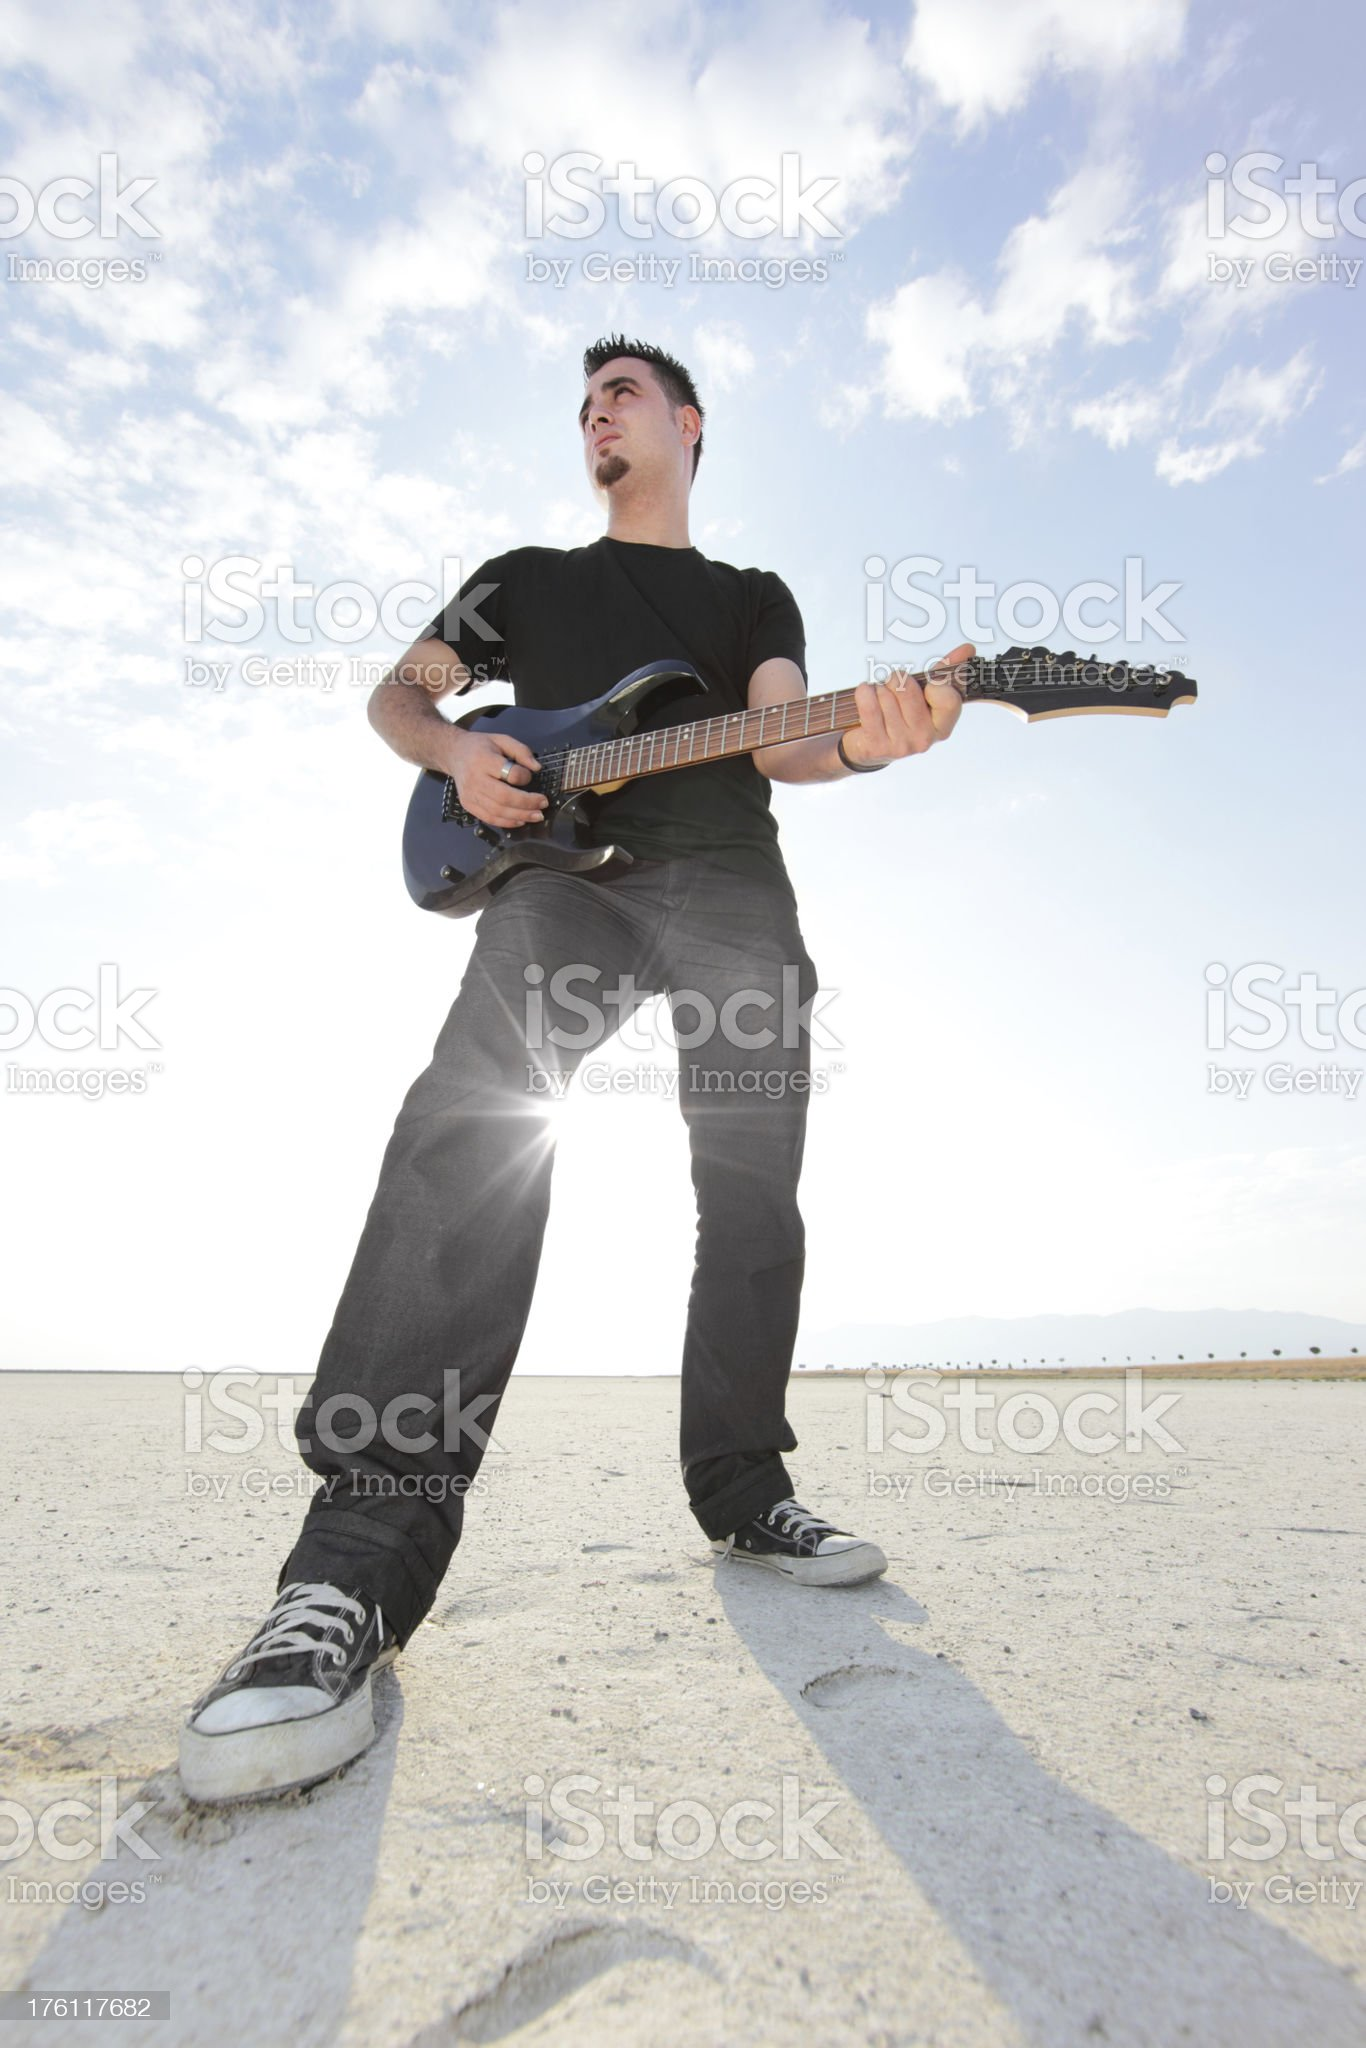 Lonesome Guitarist royalty-free stock photo